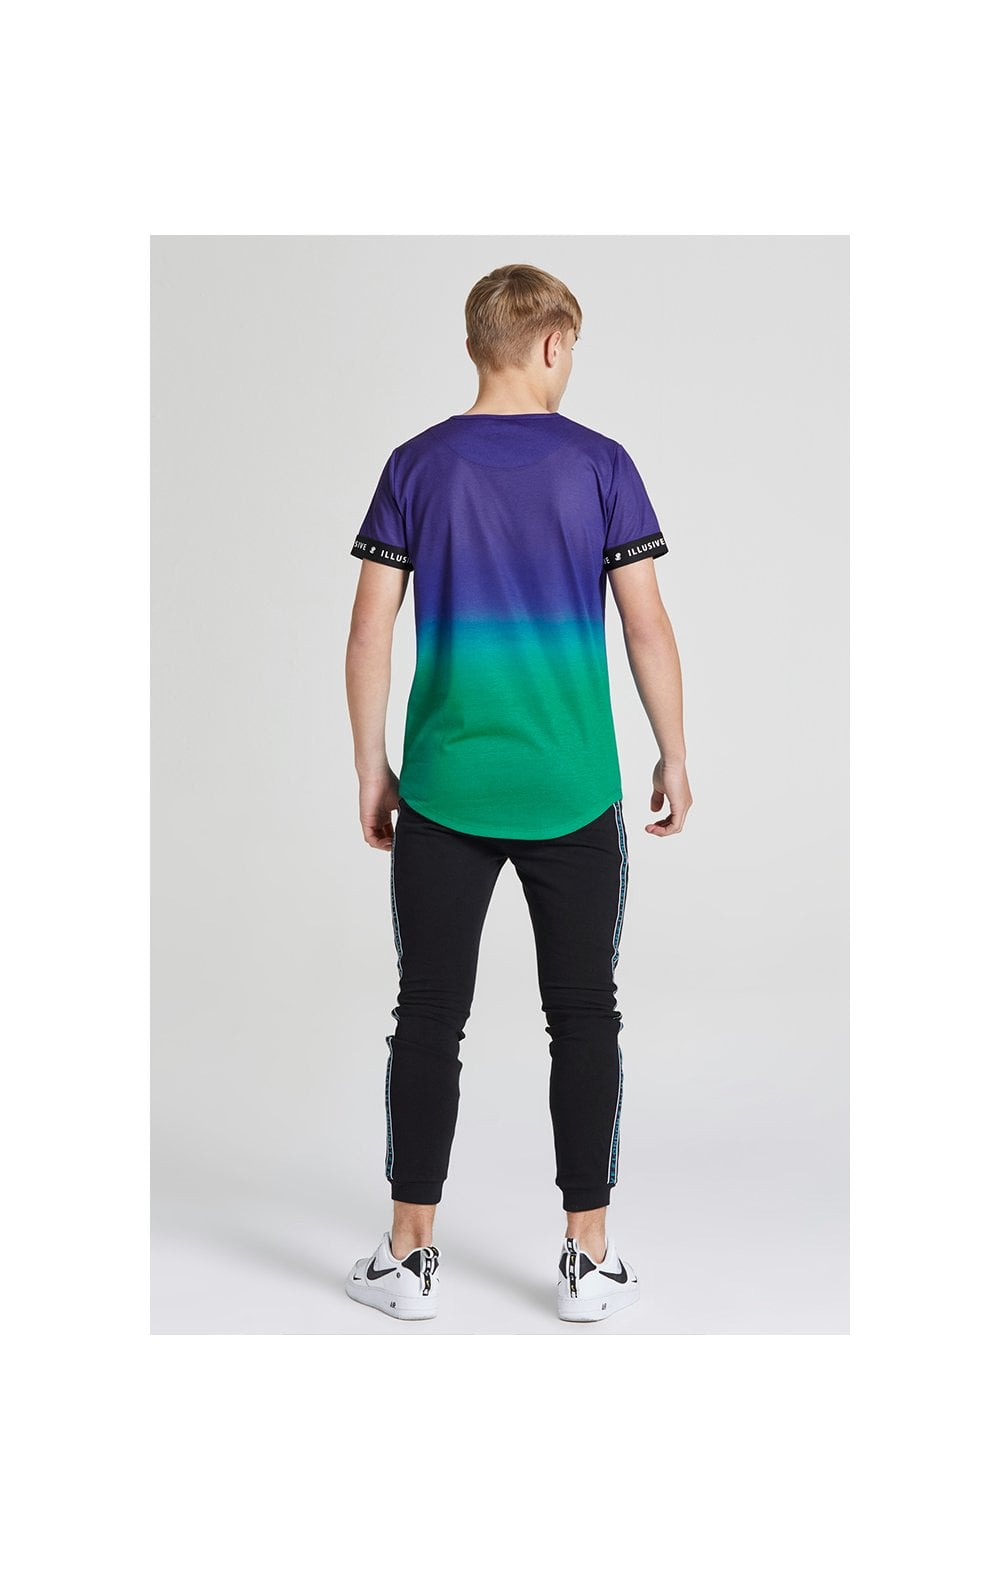 Load image into Gallery viewer, Illusive London Fade Tech Tee - Purple & Teal Green (5)